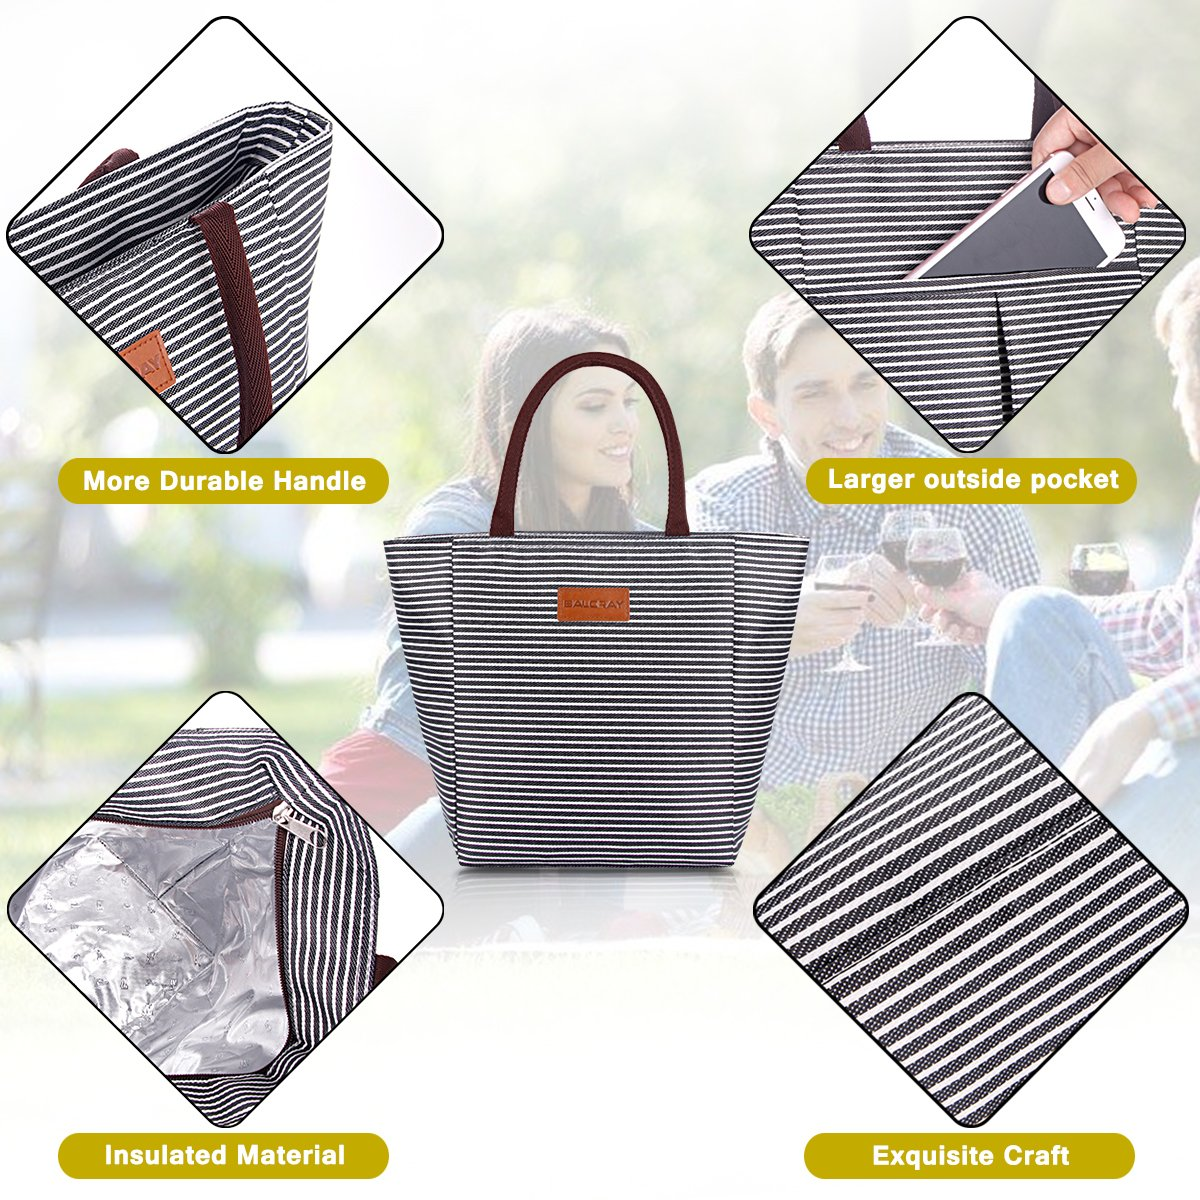 4961f81971c7 Details about BALORAY Lunch Bag Tote Bag Lunch Organizer Lunch Holder Lunch  Container (G-199L